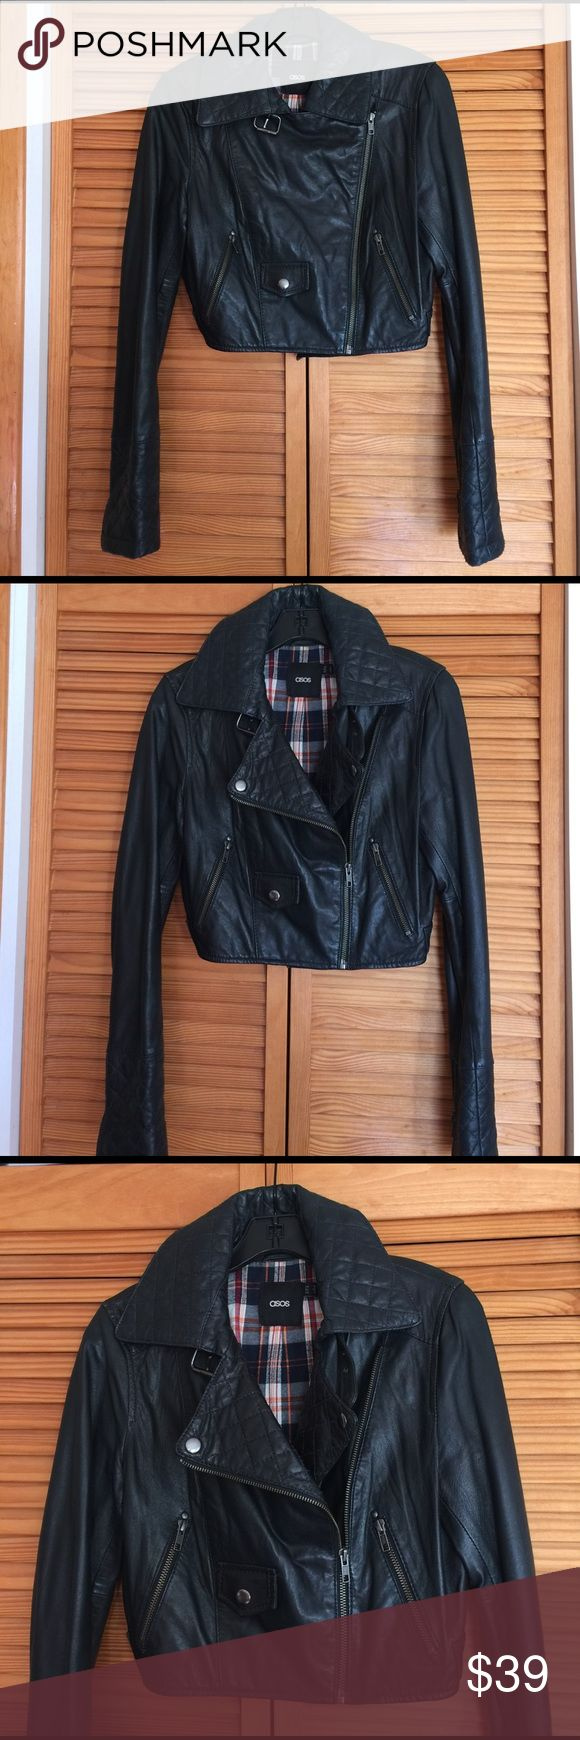 ASOS Leather motorcycle jacket This cropped real leather jacket is so stylish. Quilted color and cuff. I have too many leather jackets, this need a new home. Jackets & Coats